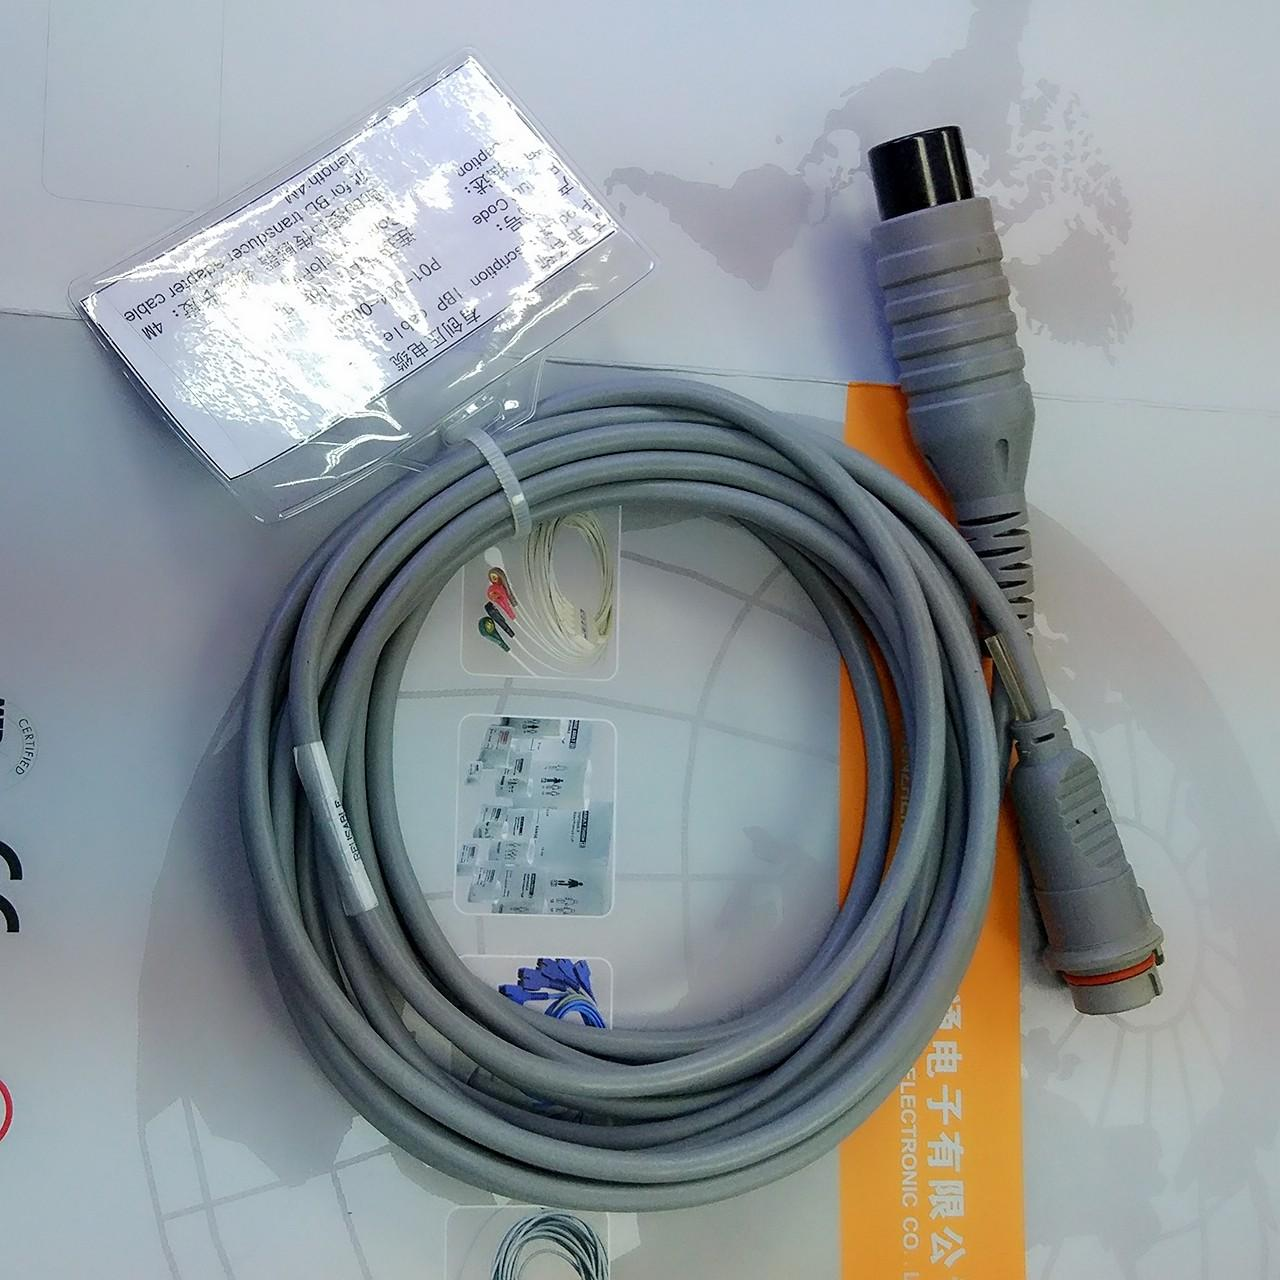 Buy cheap Generic AAMI Reusable Spo2 Sensor BD Transducer Adapter IBP Cable from wholesalers